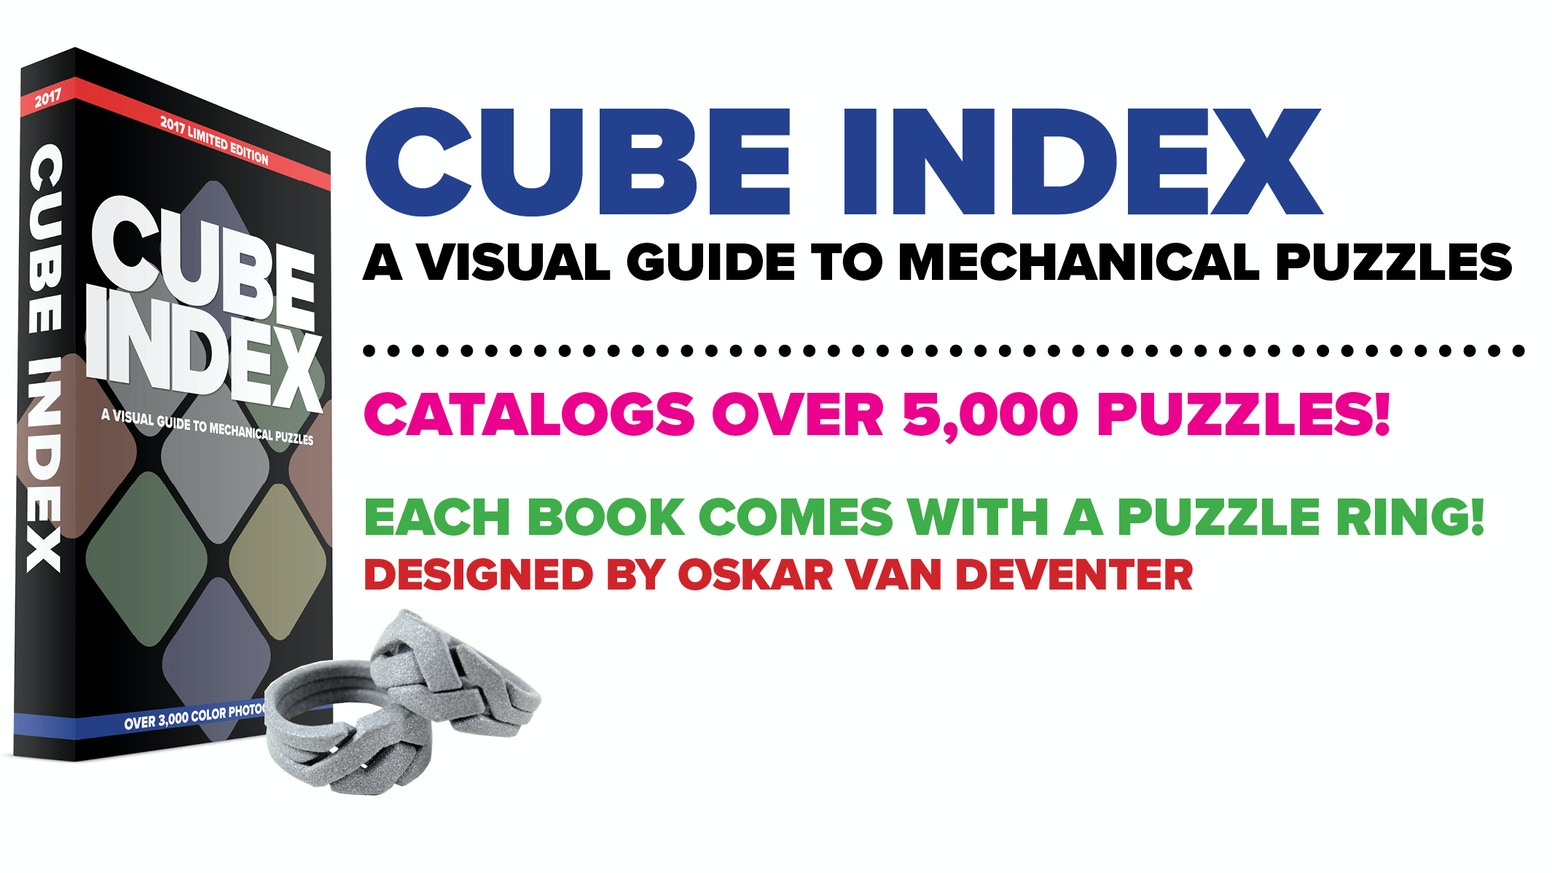 Cube index a visual guide to mechanical puzzles by cube index an upcoming book devoted to visually cataloging over 5000 mechanical and twisty puzzles limited edition buycottarizona